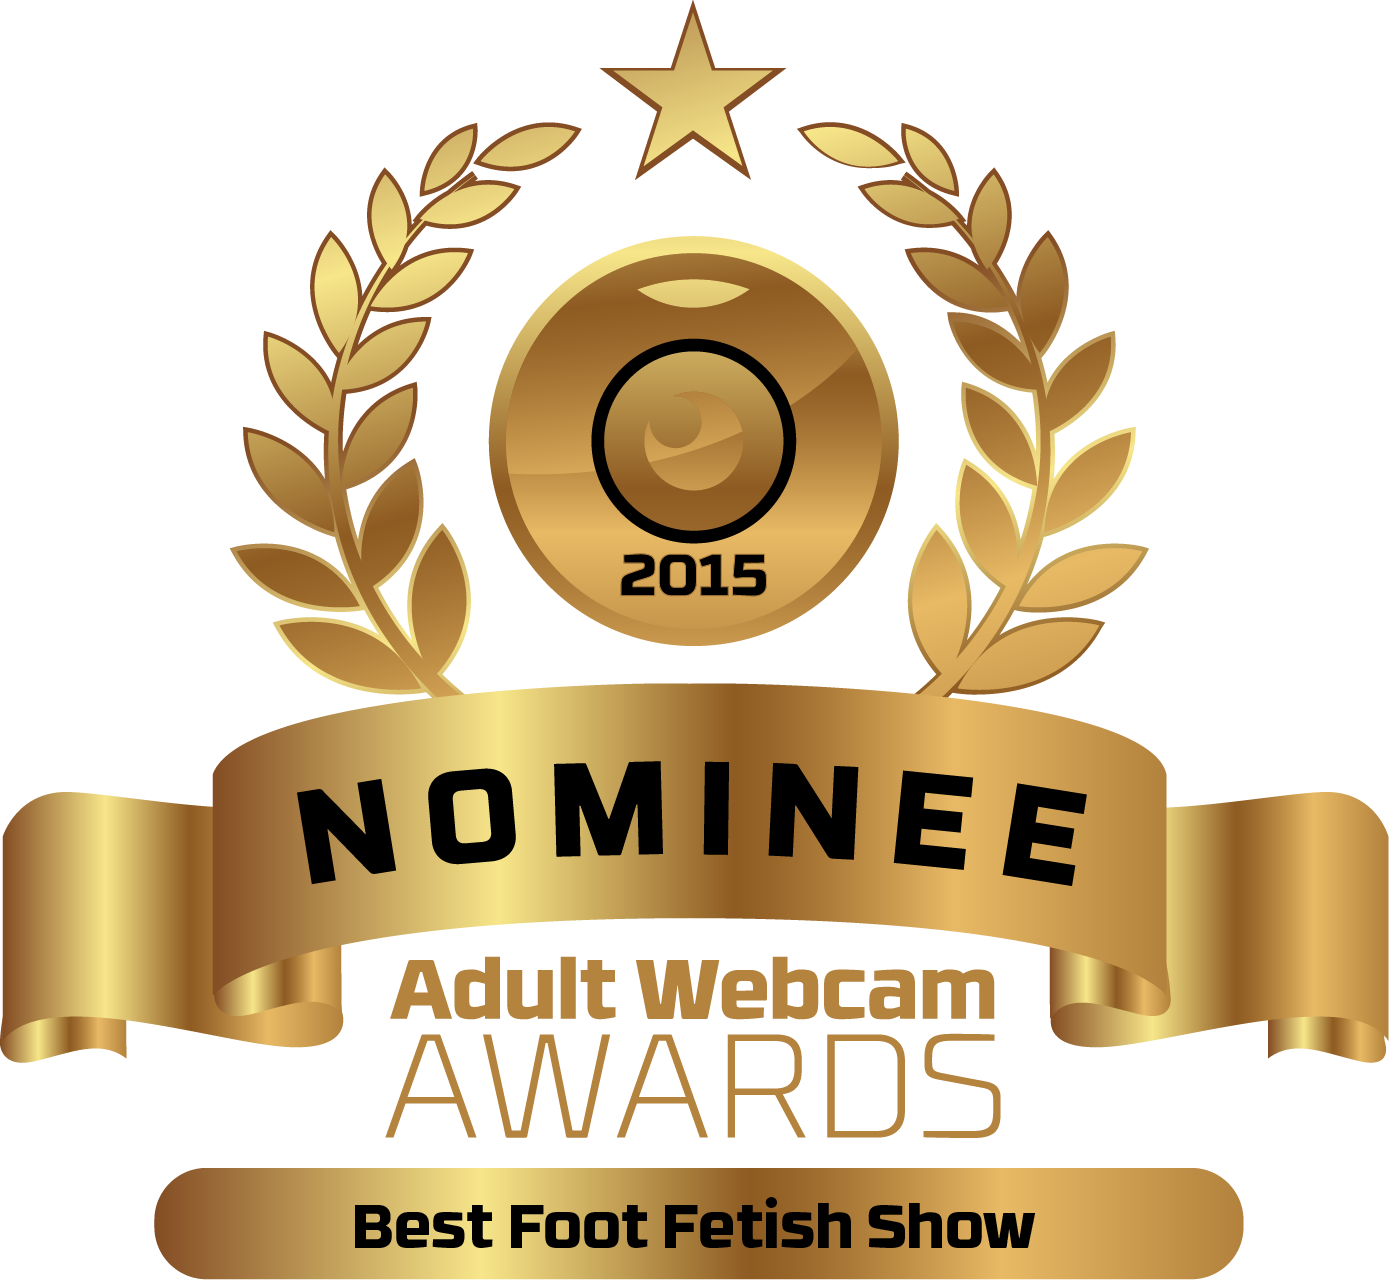 Best foot fetish show nominee